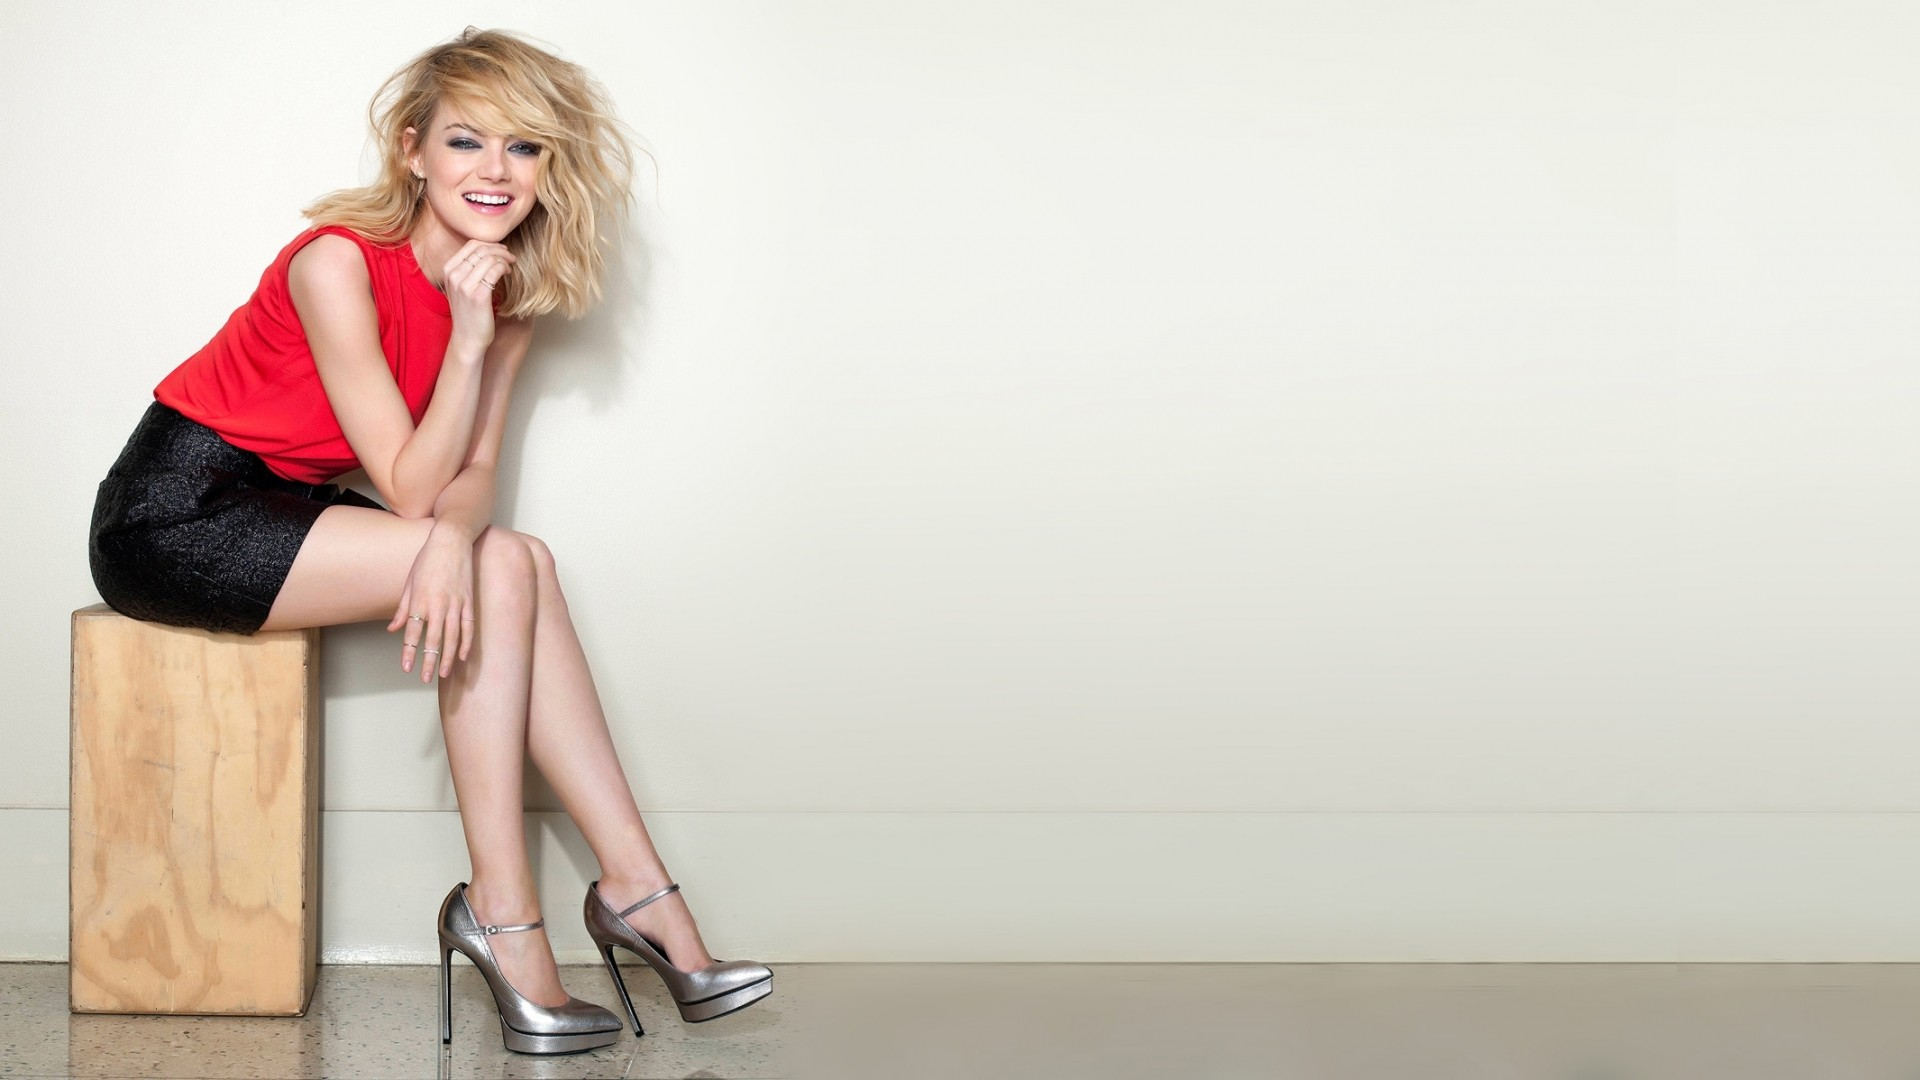 Emma Stone 1080p Wallpapers